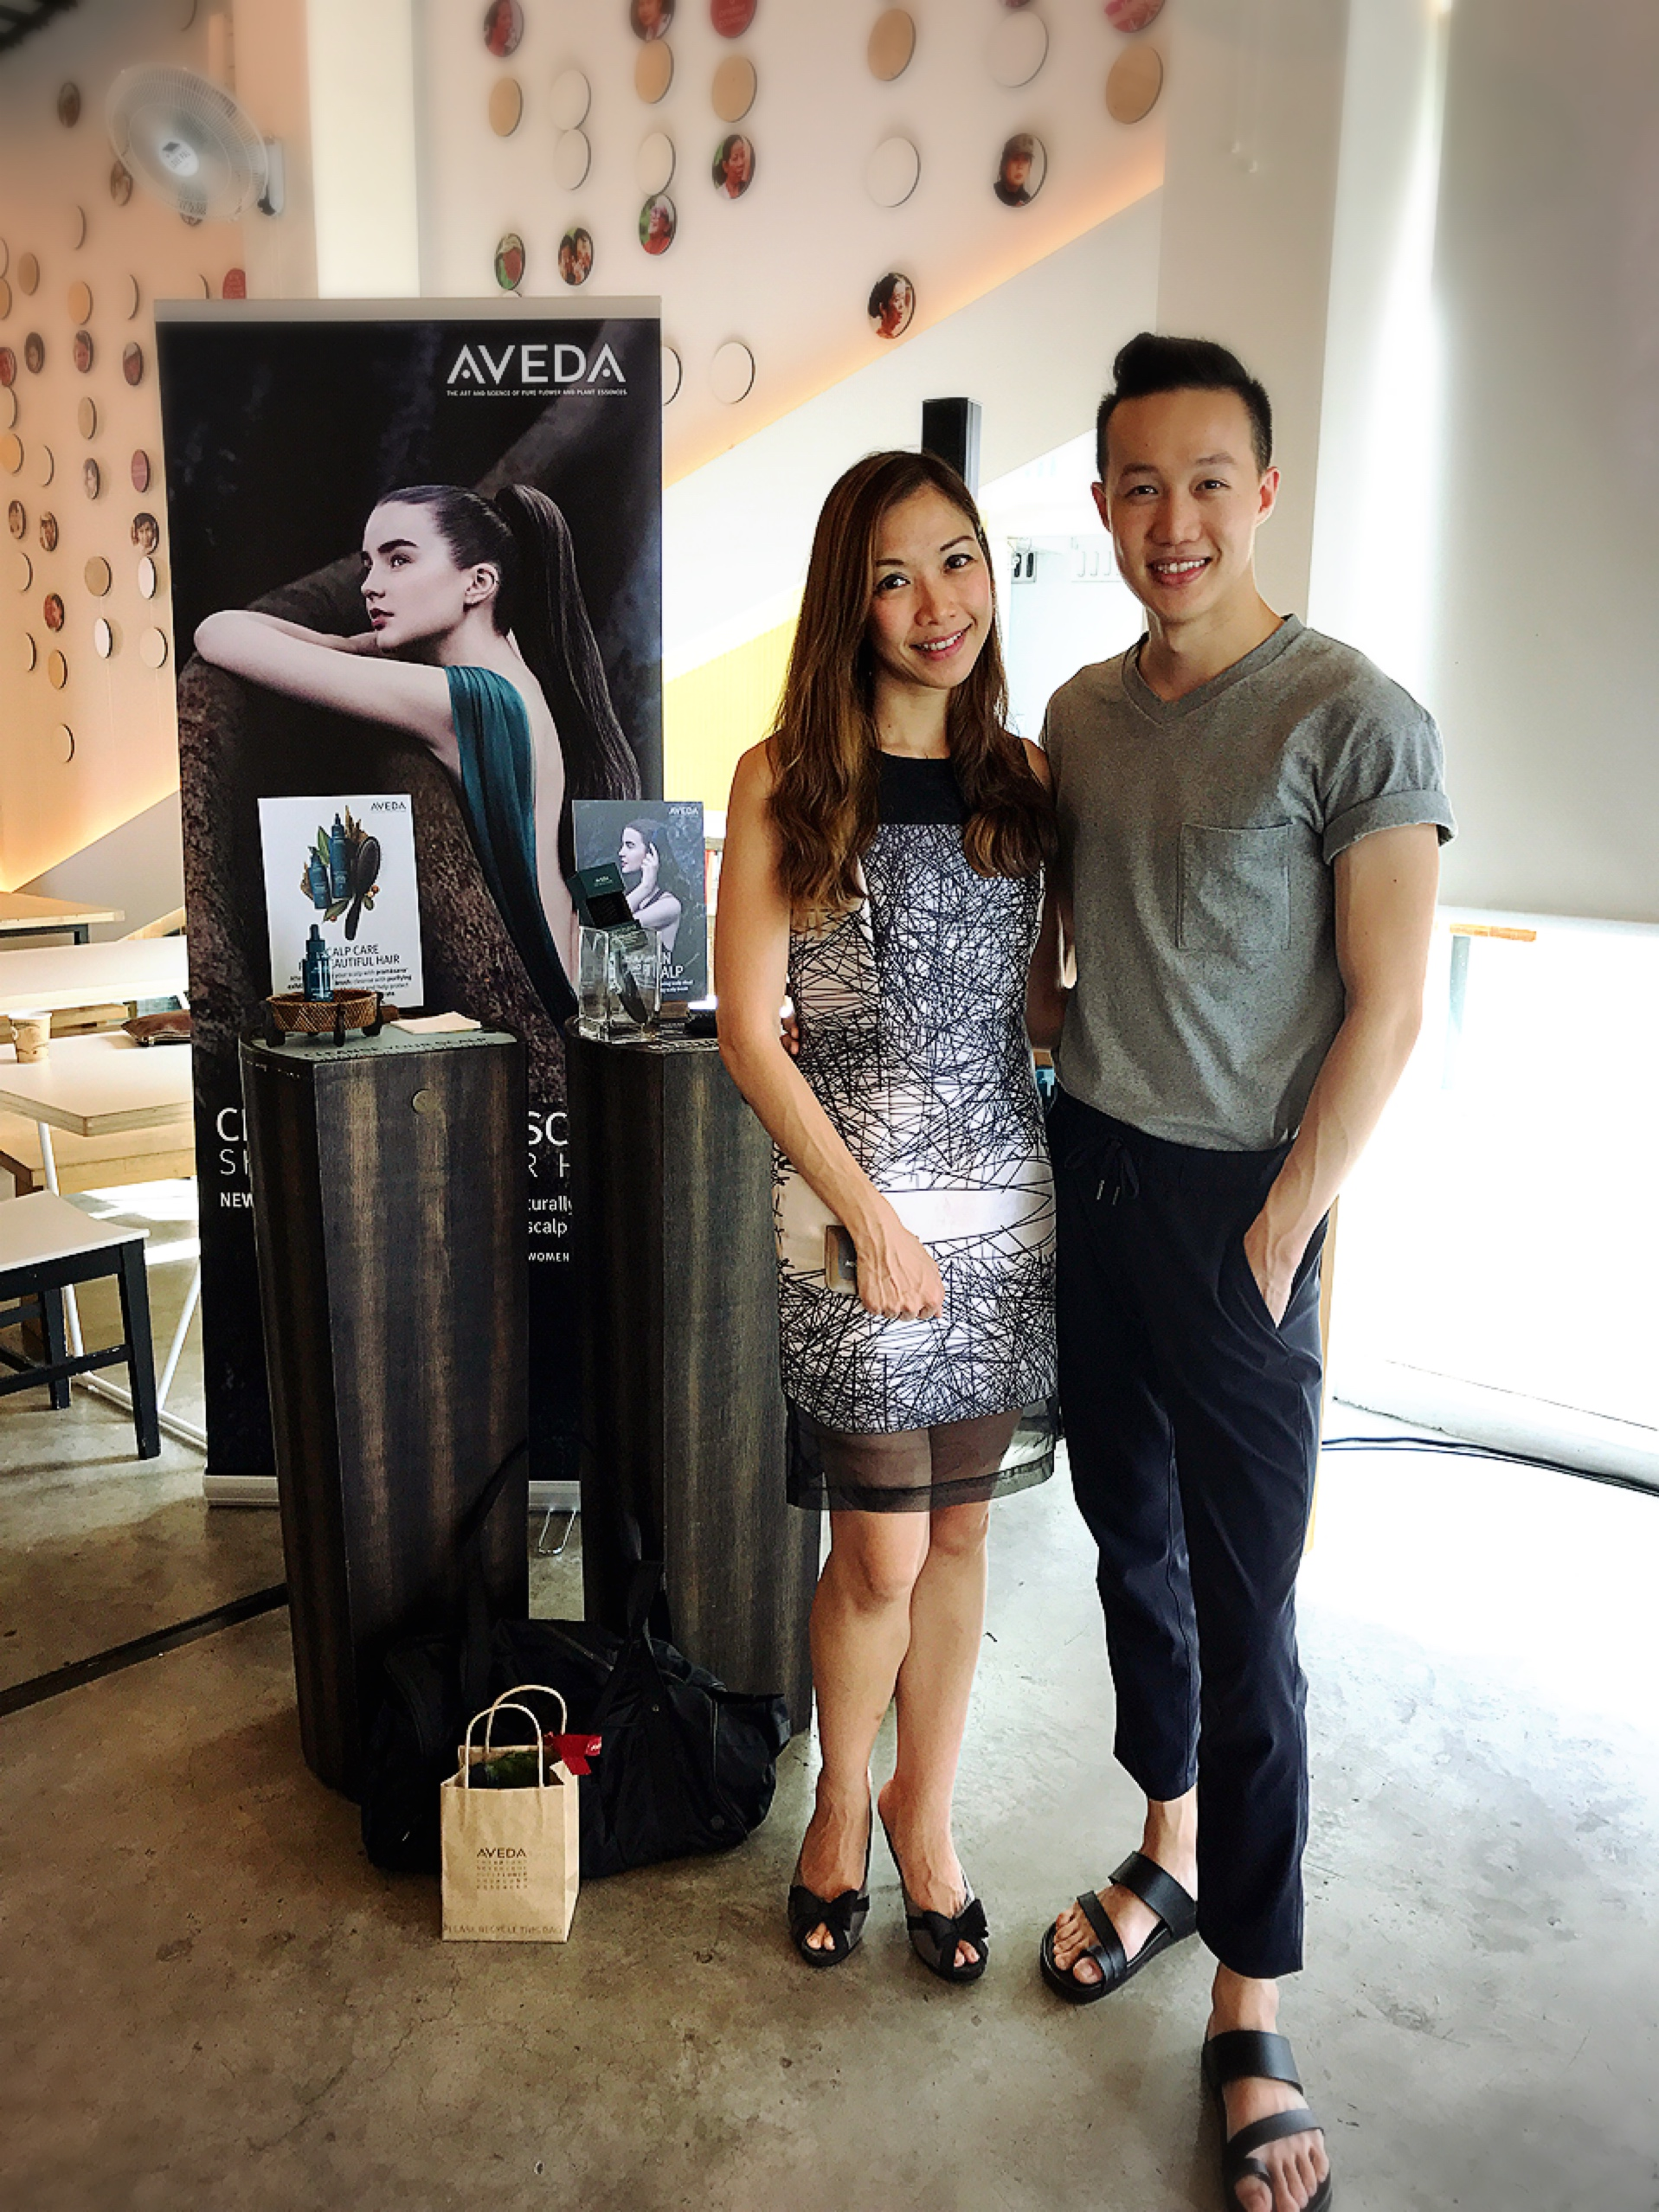 Aveda Pramasana launch